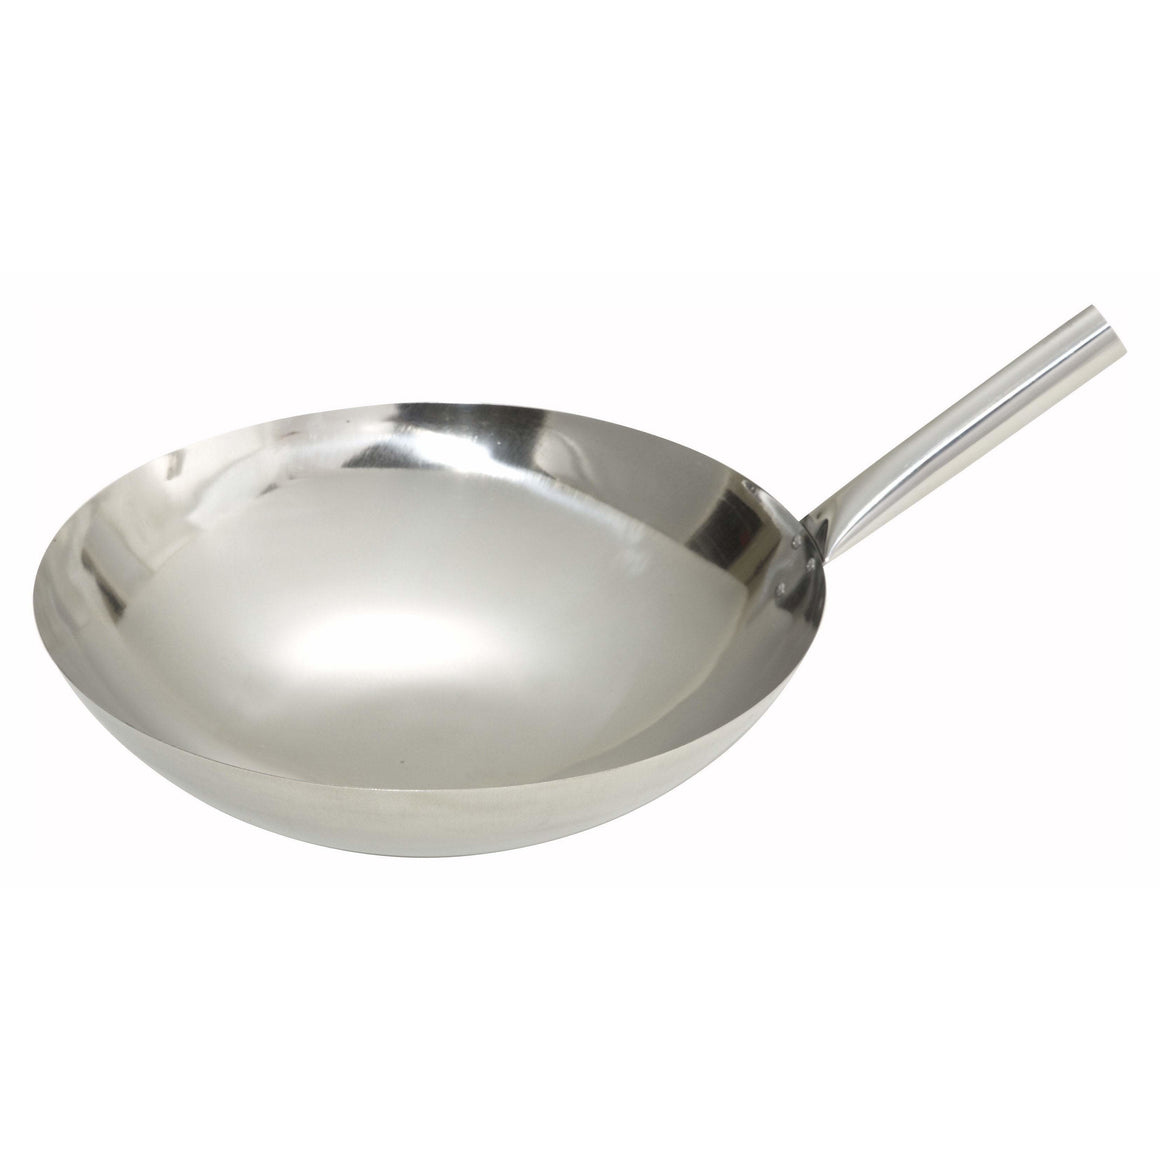 "Winco - WOK-16N - 16"" Stainless Steel Wok, Nailed Joint - Cookware"